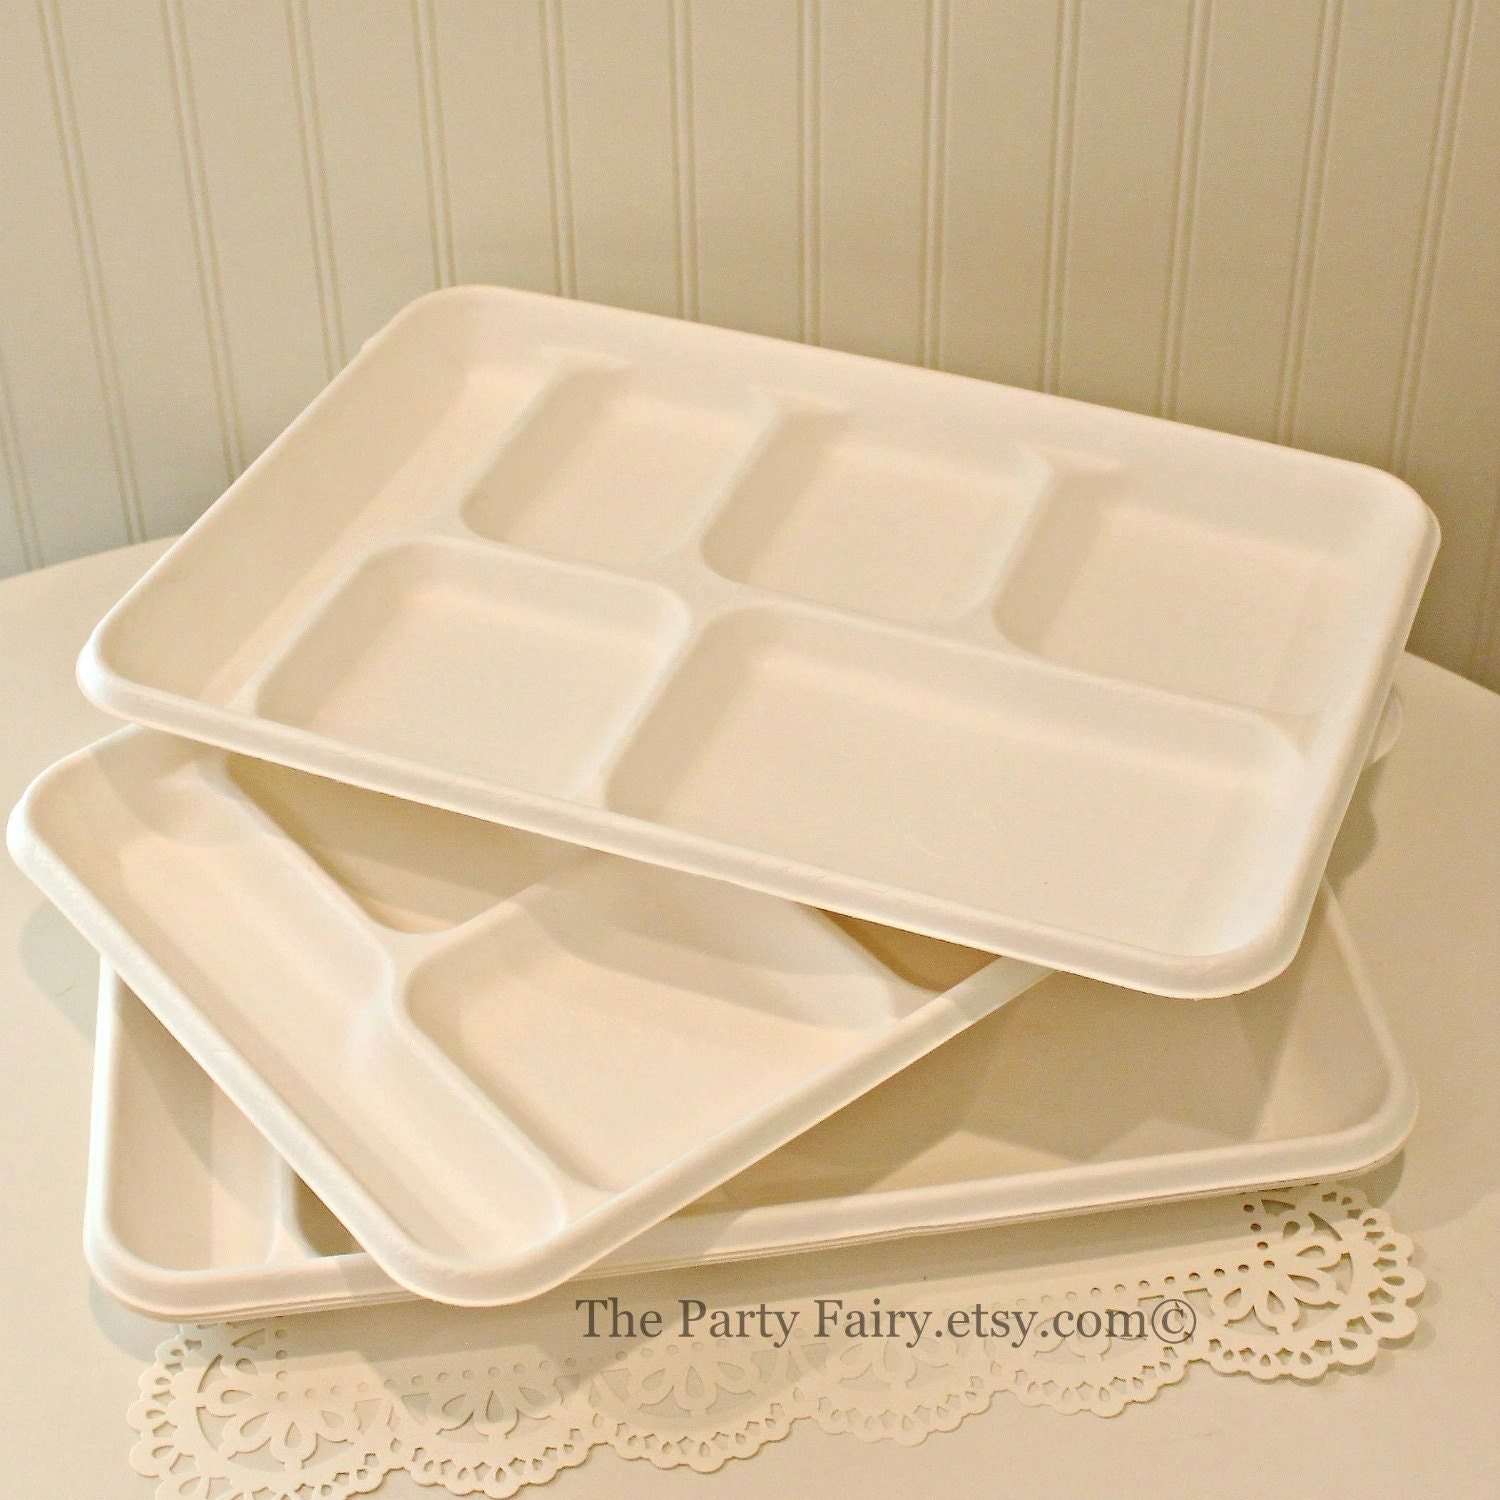 $11.95  sc 1 st  Etsy Studio & Food Trays 10 Disposable Food Trays Disposable Plates Cafeteria ...